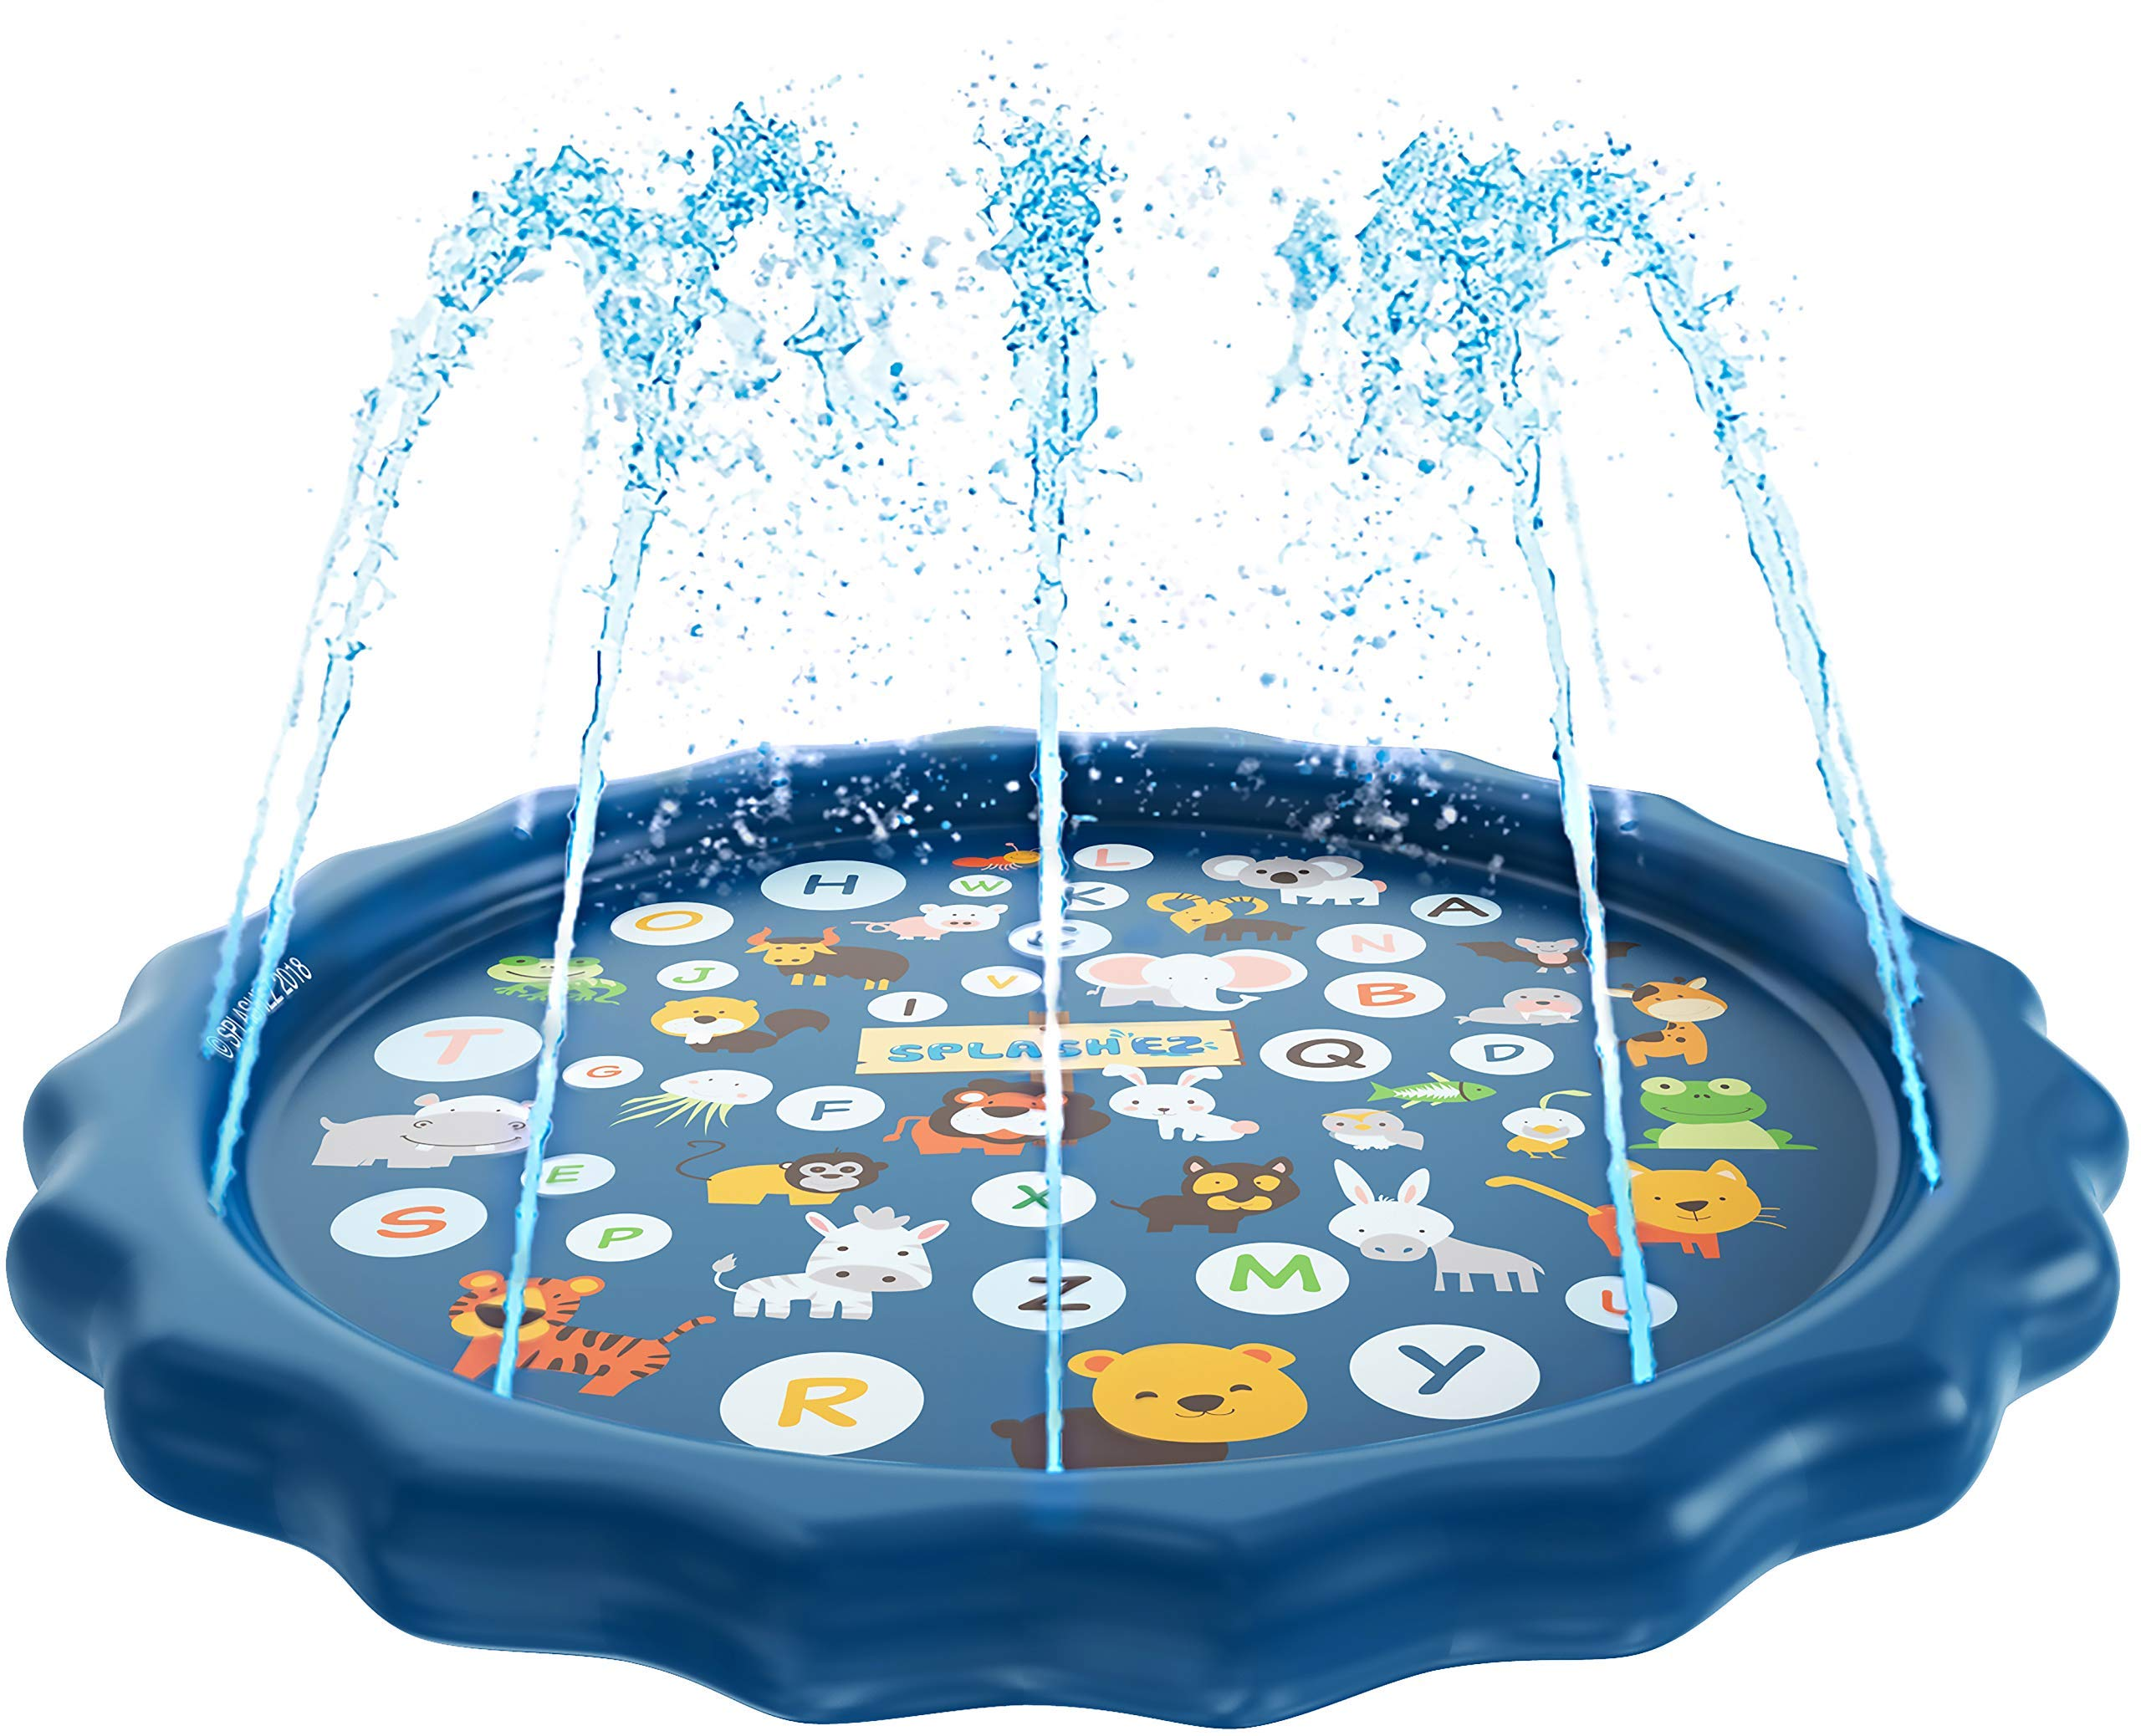 SplashEZ 3-in-1 Sprinkler for Kids, Splash Pad, and Wading Pool for Learning - Children's Sprinkler Pool, 60'' Inflatable Water Toys - ''from A to Z'' Outdoor Swimming Pool for Babies and Toddlers